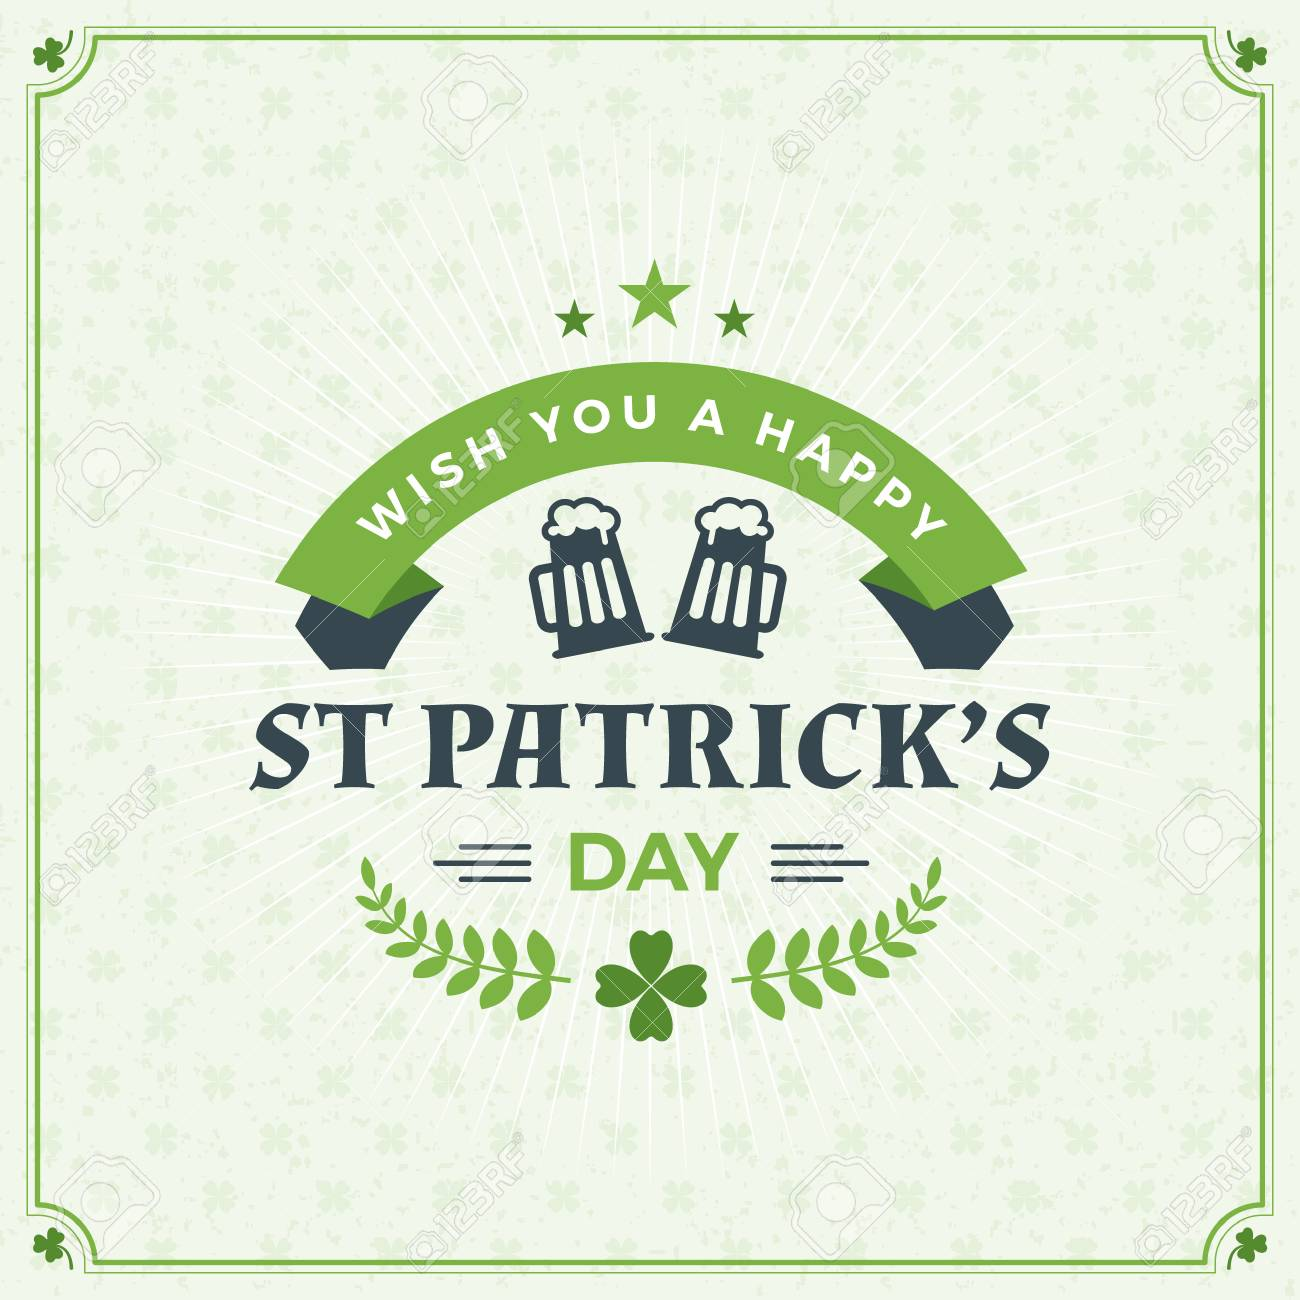 St patricks day vintage holiday badge design vector greetings st patricks day vintage holiday badge design vector greetings card design saint patricks m4hsunfo